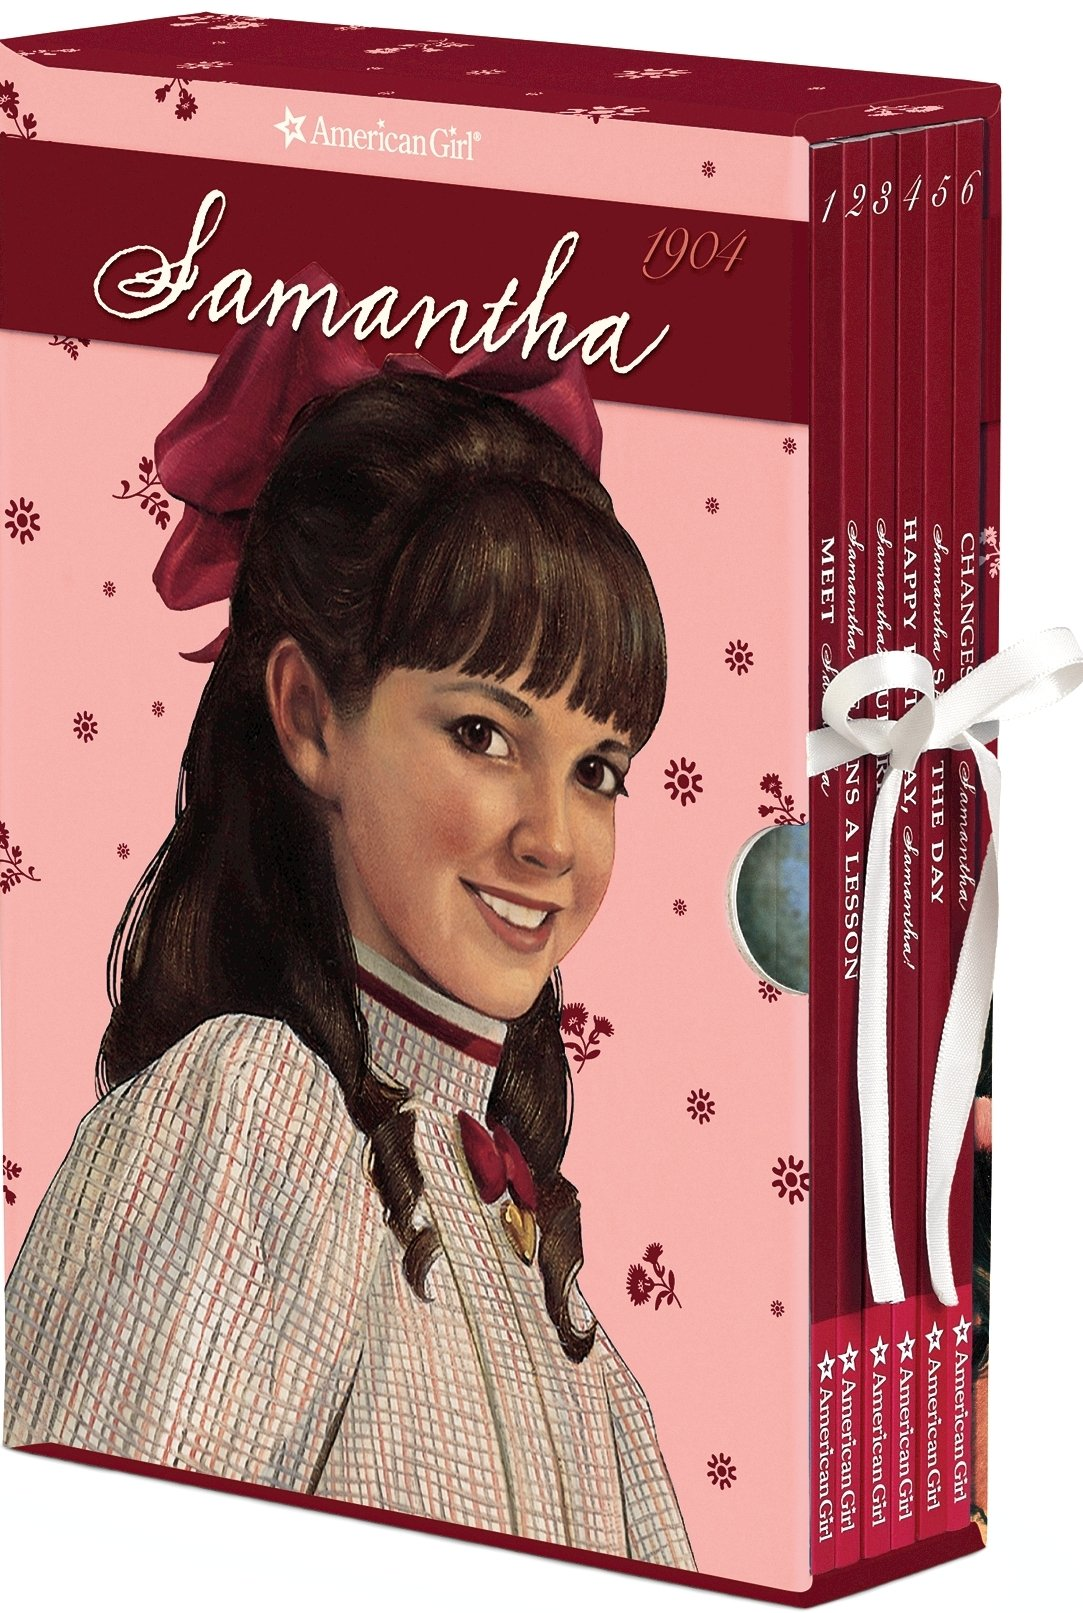 Samantha Boxed Set With Game (american Girl): Valerie Tripp, Dan Andreasen:  9781593697914: Amazon: Books